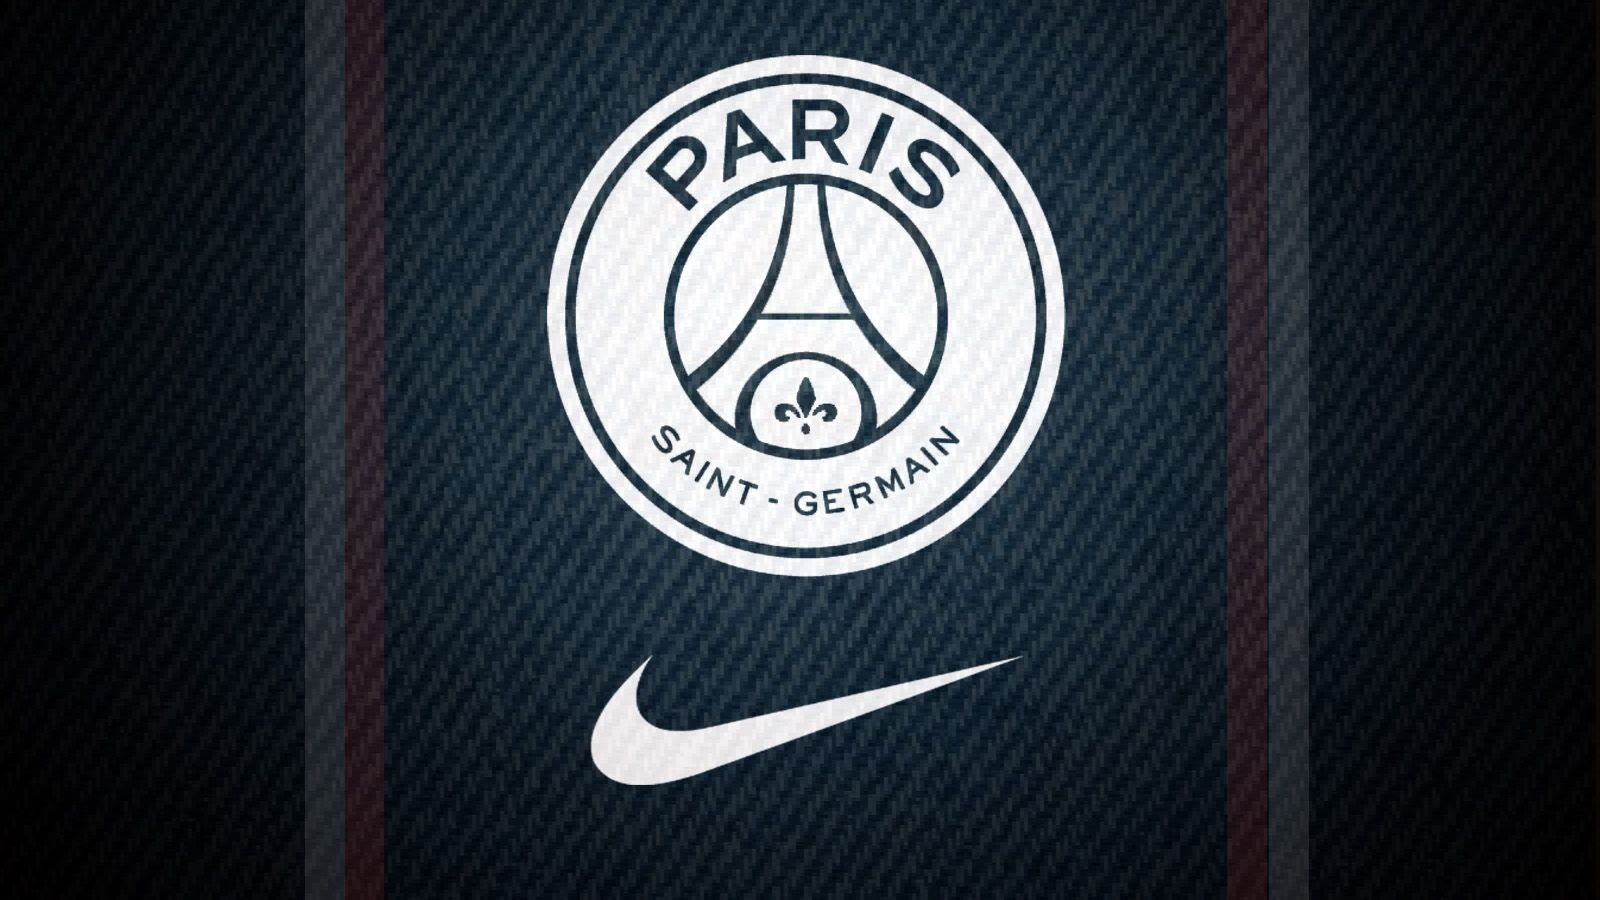 paris saint-germain - psg wallpapers - wallpaper cave | free